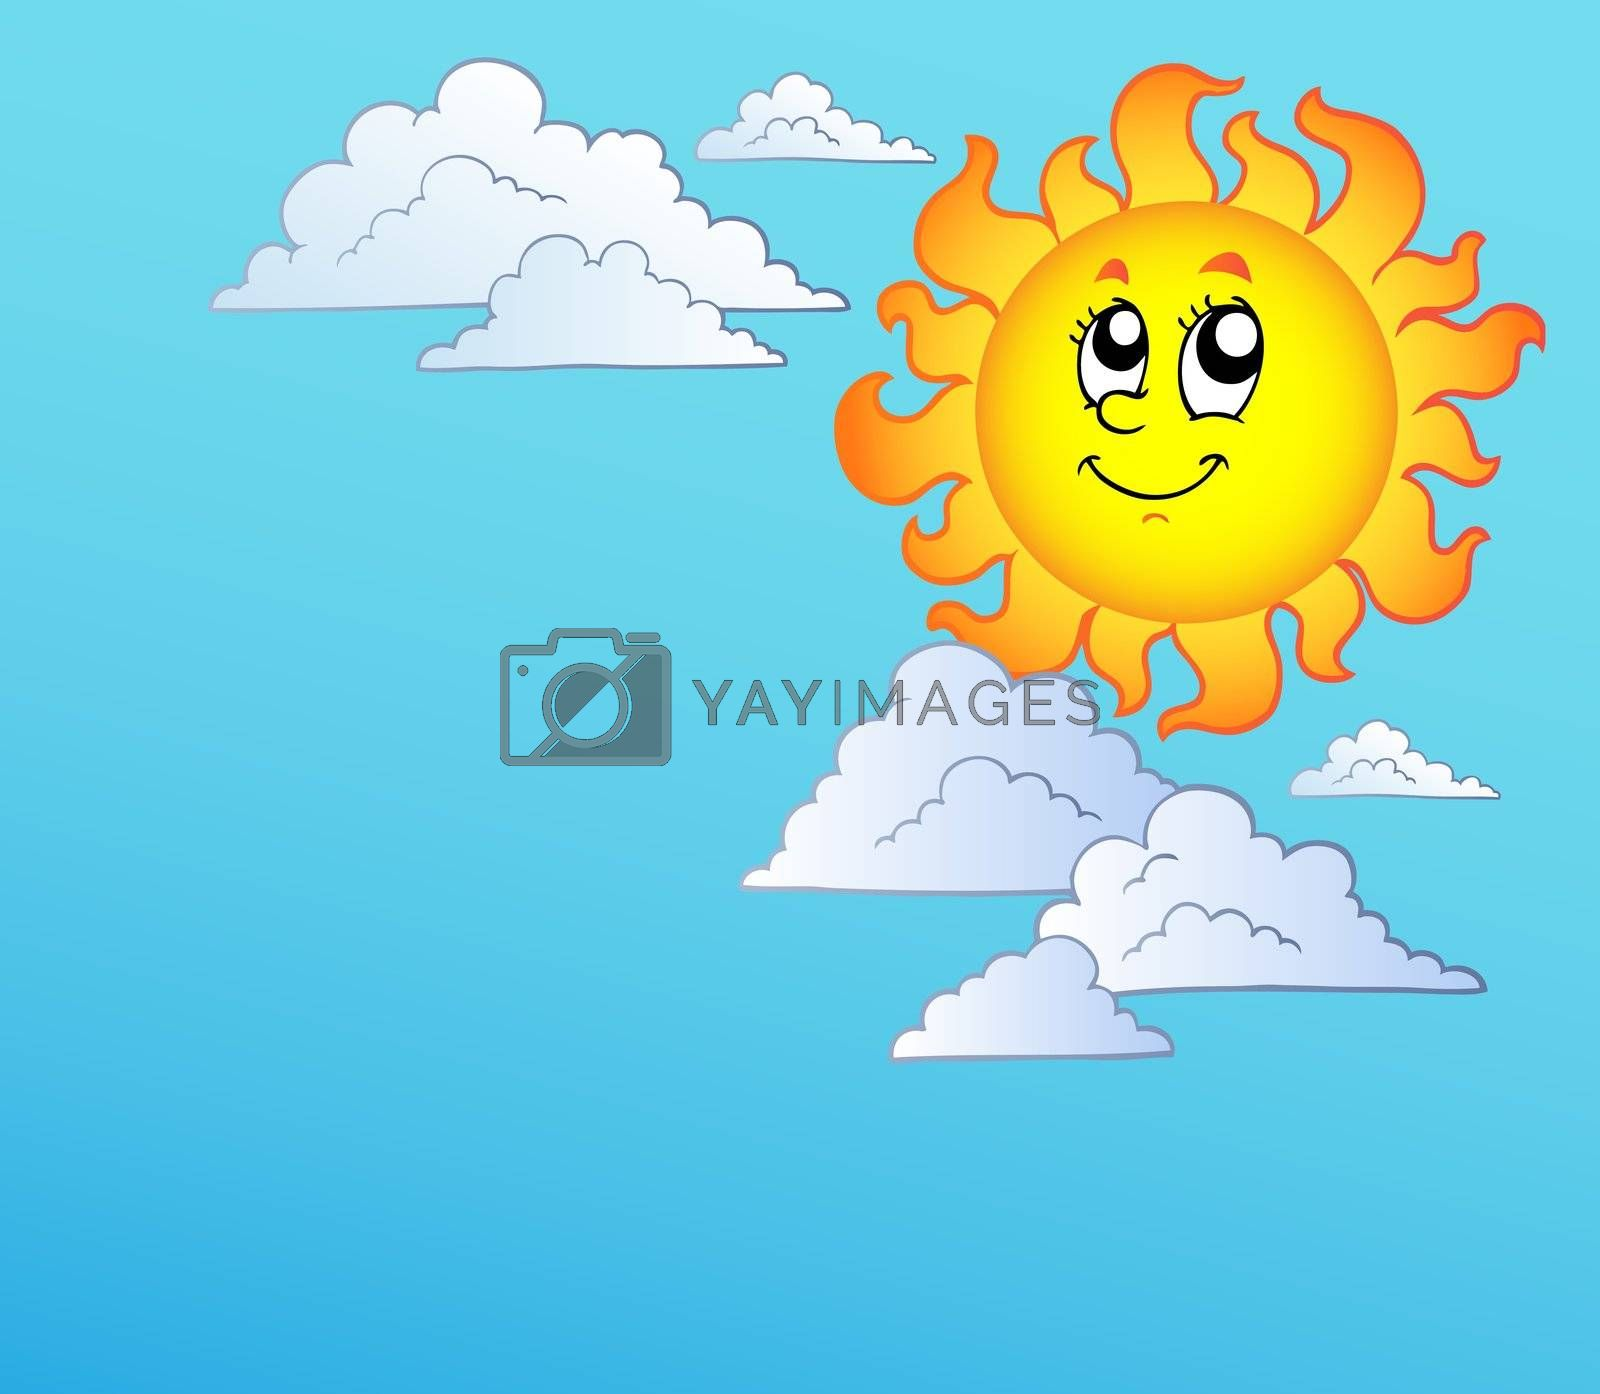 Cartoon Sun with clouds on blue sky - vector illustration.